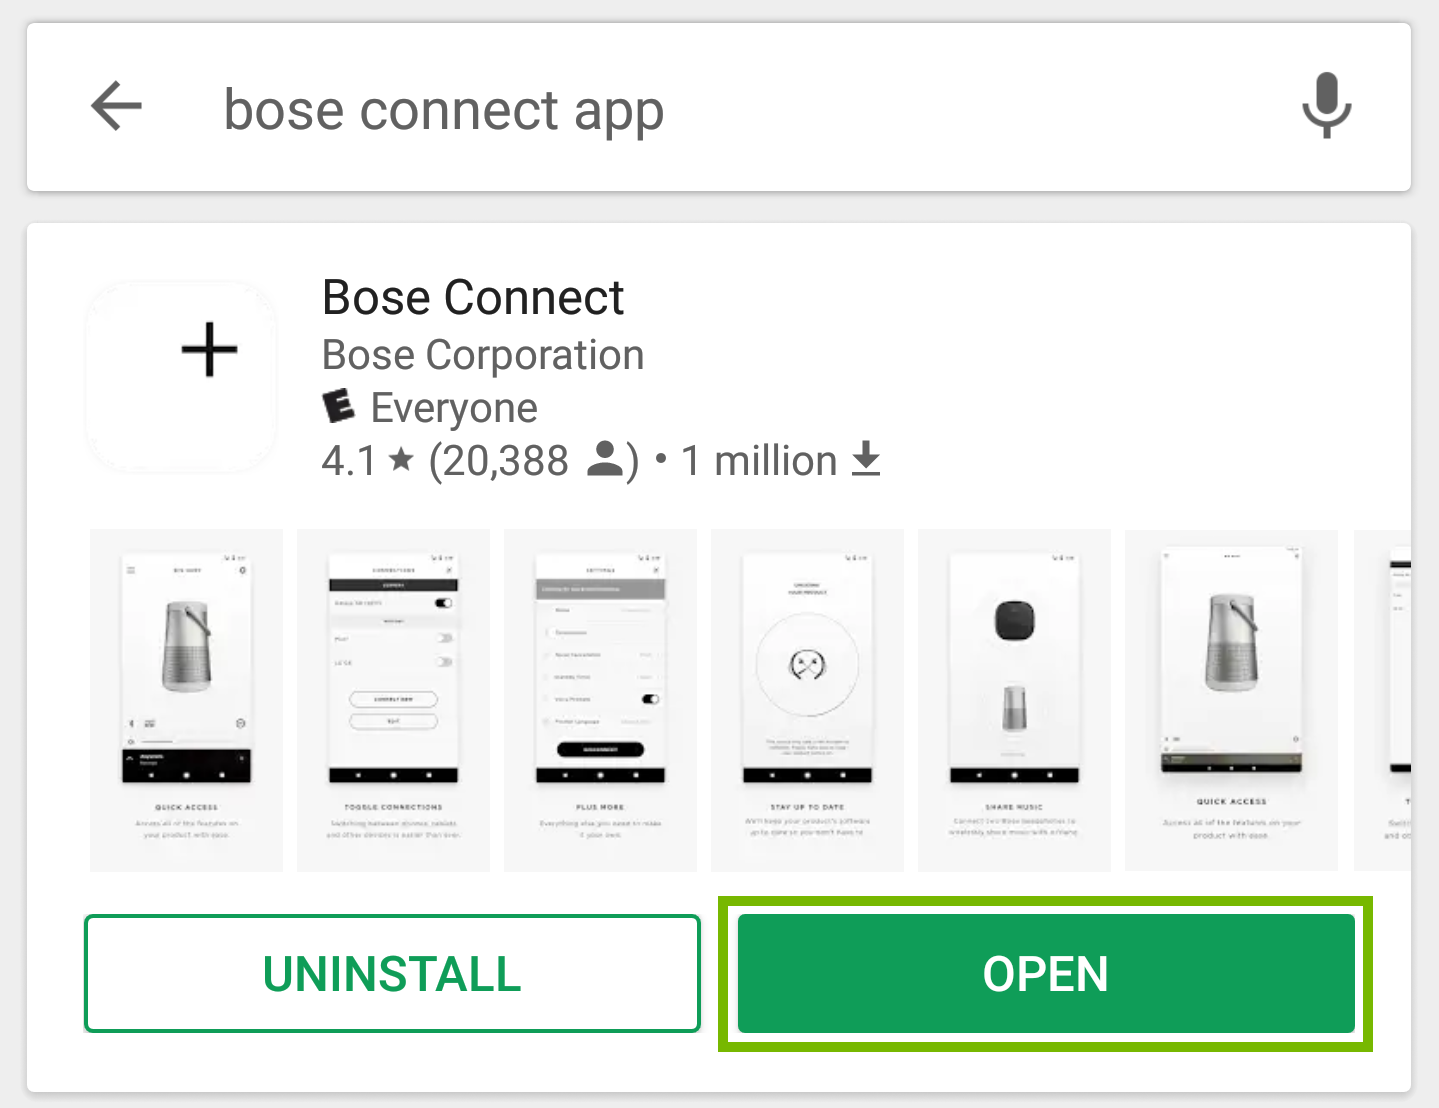 Bose Connect app page with open highlighted.